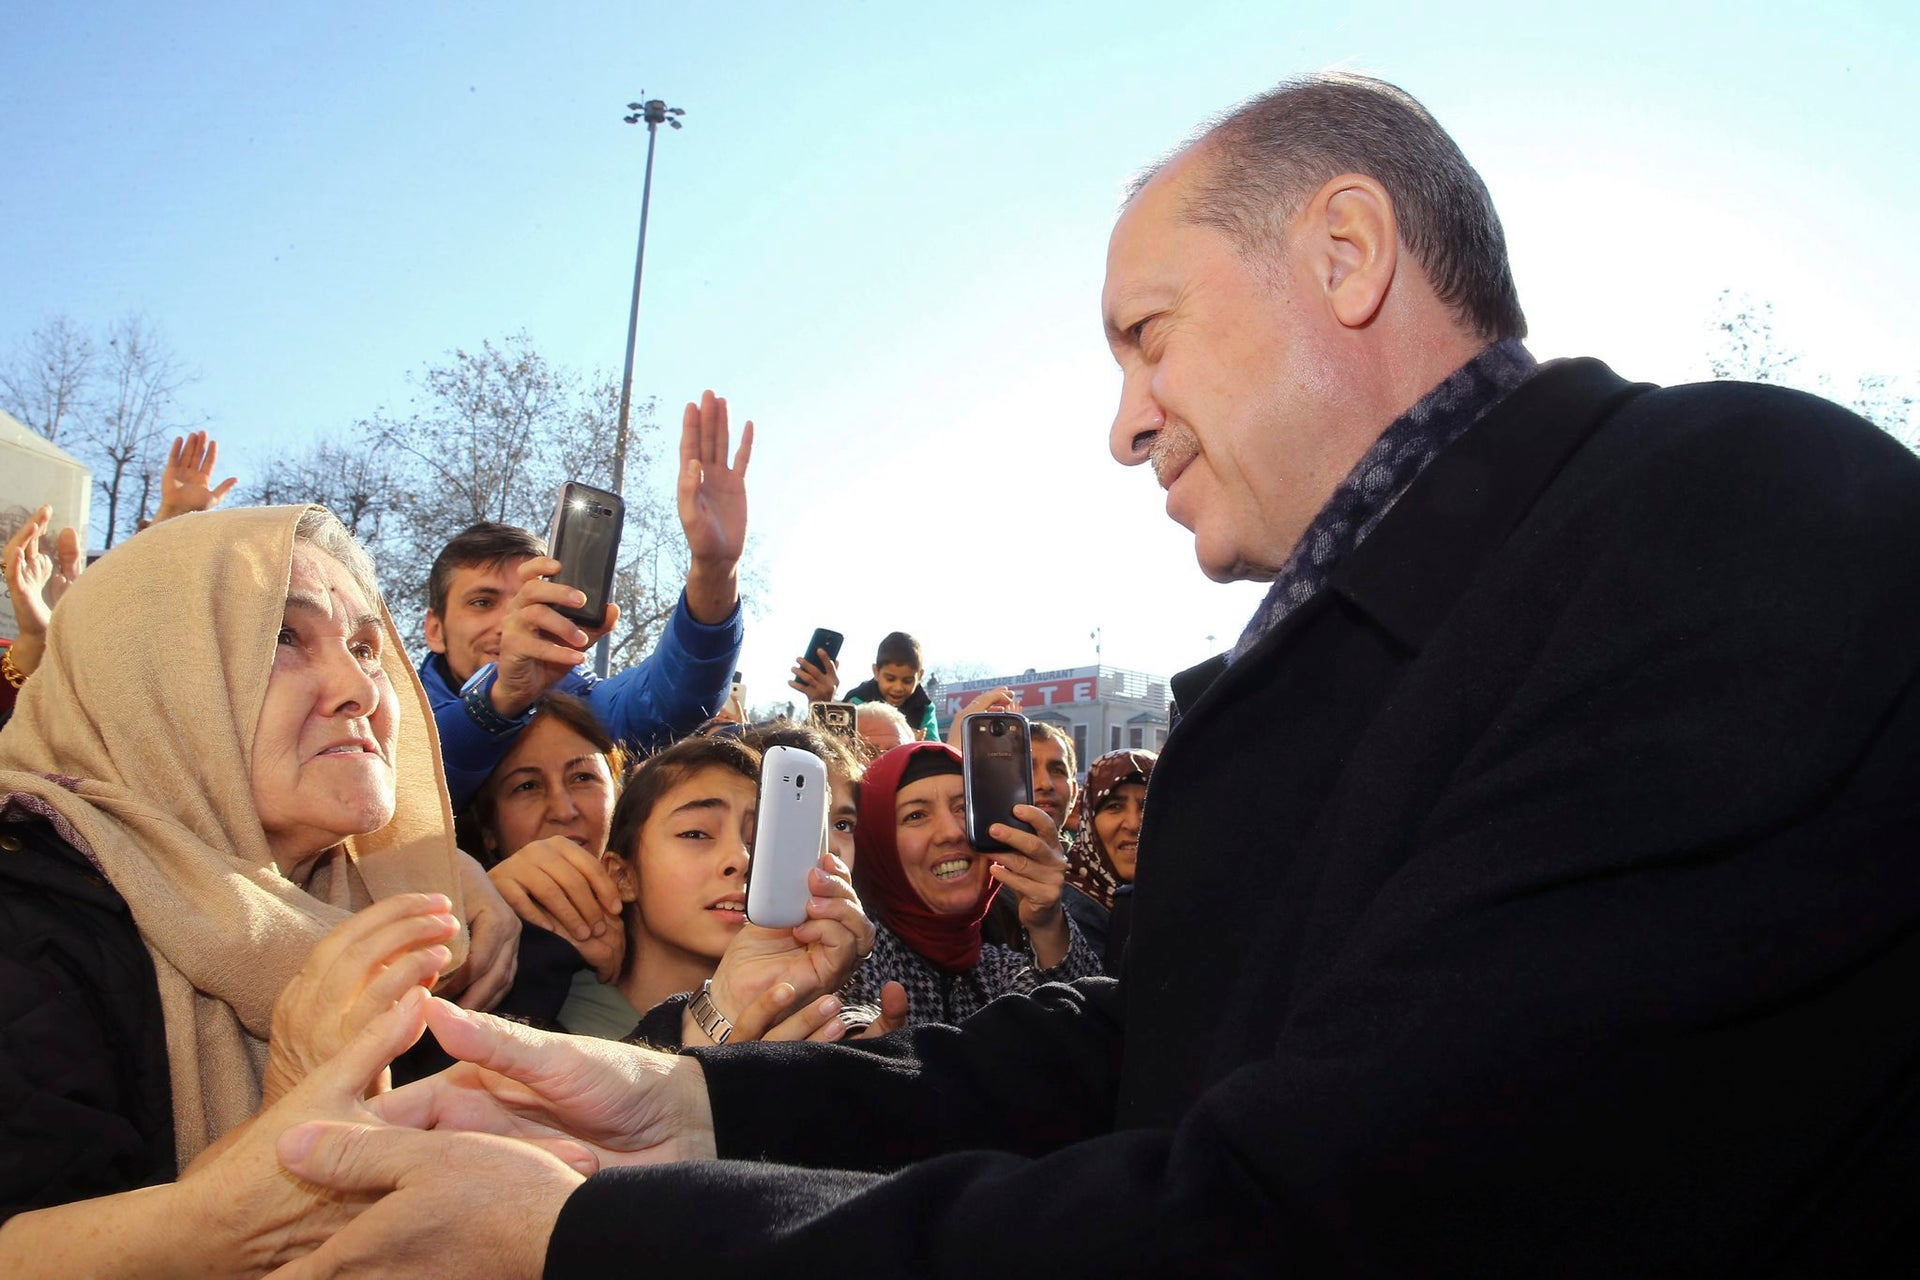 Turkey's President Recep Tayyip Erdogan speaks with supporters after he visited Eyup Sultan Mosque in Istanbul, Sunday, Dec. 11, 2016. Turkey declared a national day of mourning Sunday after twin blasts in Istanbul killed dozens of people and wounded many others near a soccer stadium. Turkish authorities have banned distribution of images relating to the Istanbul explosions within Turkey.